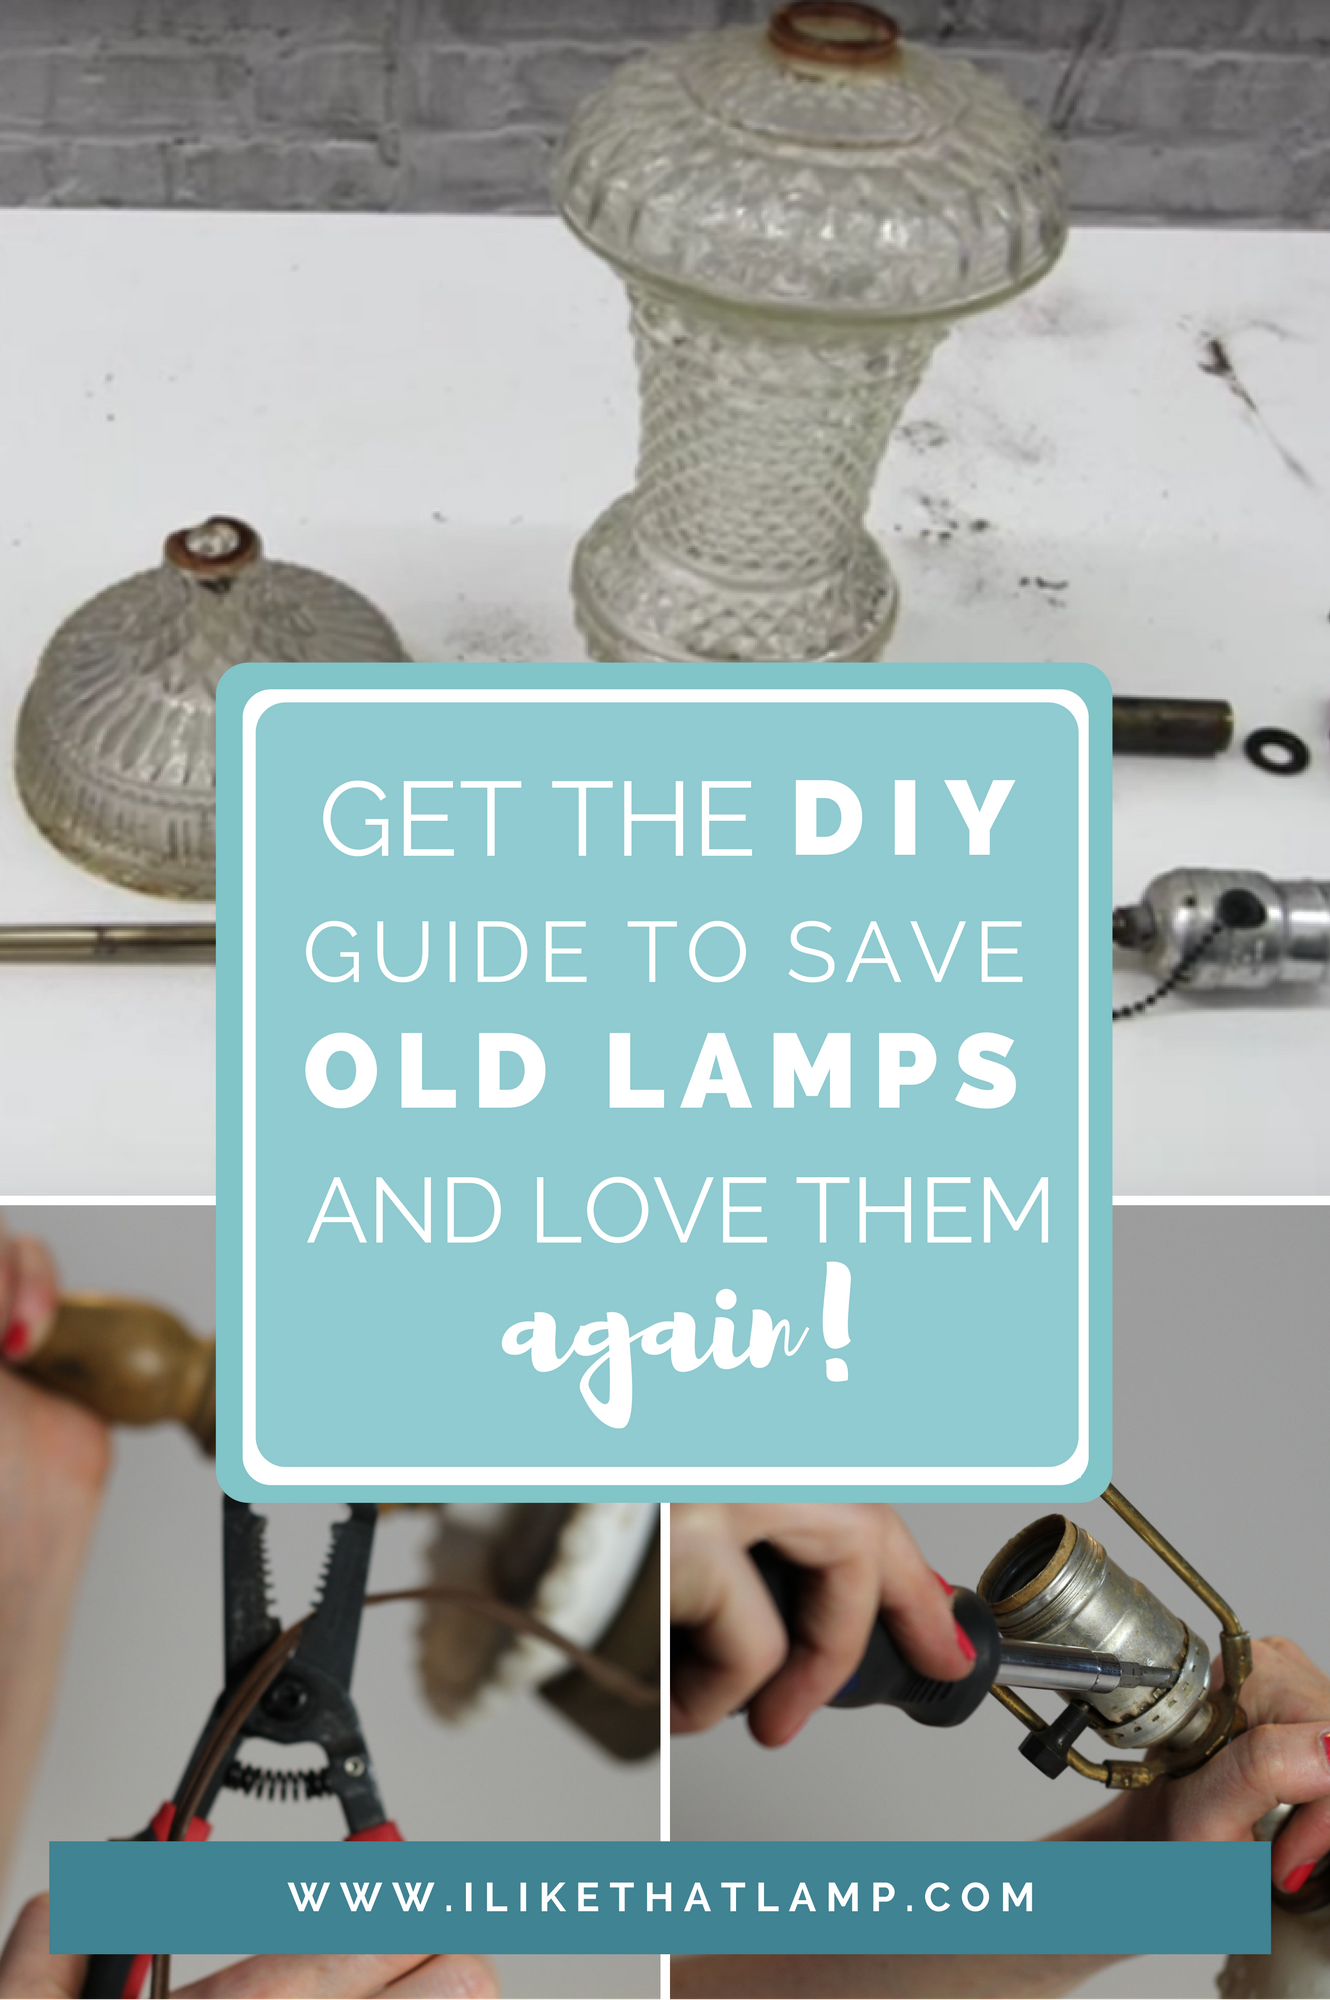 Comprehensive Diy E Book Old Lamps New Life Tutorials By I How To Rewire An Lamp This Step Guide Will Make It Easy Give Your A Complete Makeover Without Breaking The Bank Or Wasting Hours Trying Figure Out